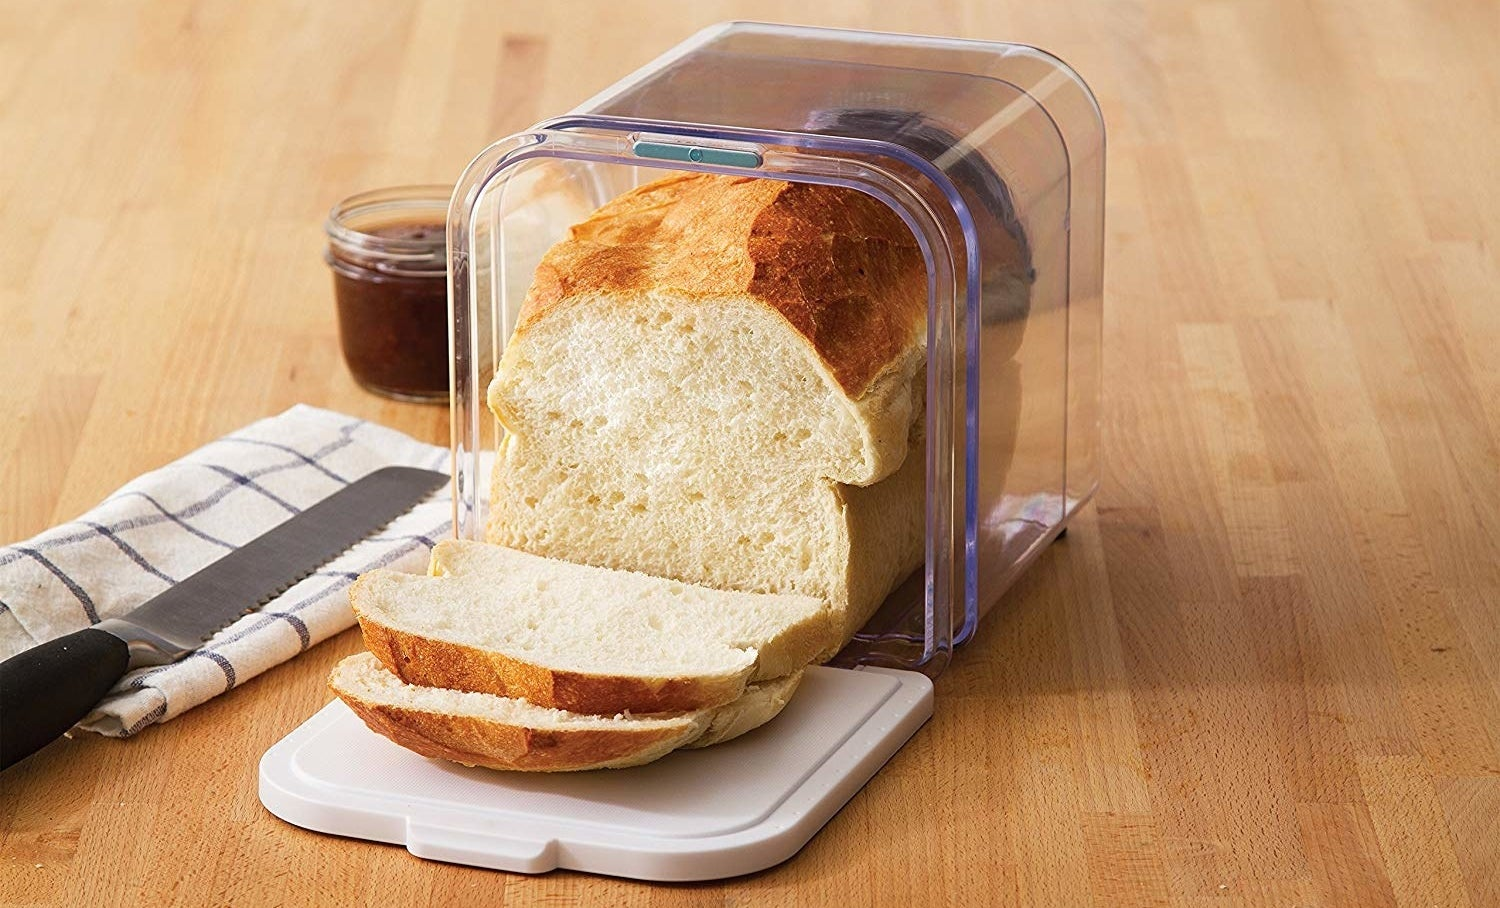 "Helps to keep bread and baked goods fresher longer. The air vent is adjustable for a variety of conditions — closed for dry conditions and opened for humid conditions. The magnetic closure helps keep it snapped shut and secure. Plus, this is BPA-free and dishwasher-safe!Promising review: ""I love these. Years ago, I was looking for a bread box and just couldn't find one that would allow me to cut the bread and put it right back in the box easily. I love that you can cut the bread on the front and that it is magnetic and how it expands. Soooo handy. I have two of them, so I can rotate, or sometimes both of them have bread in them. This would be easy for cookies or any baked goods you want to get in and out of easily on your counter. Really love this product."" —Walnut Farm DesignsPrice: $19.28"